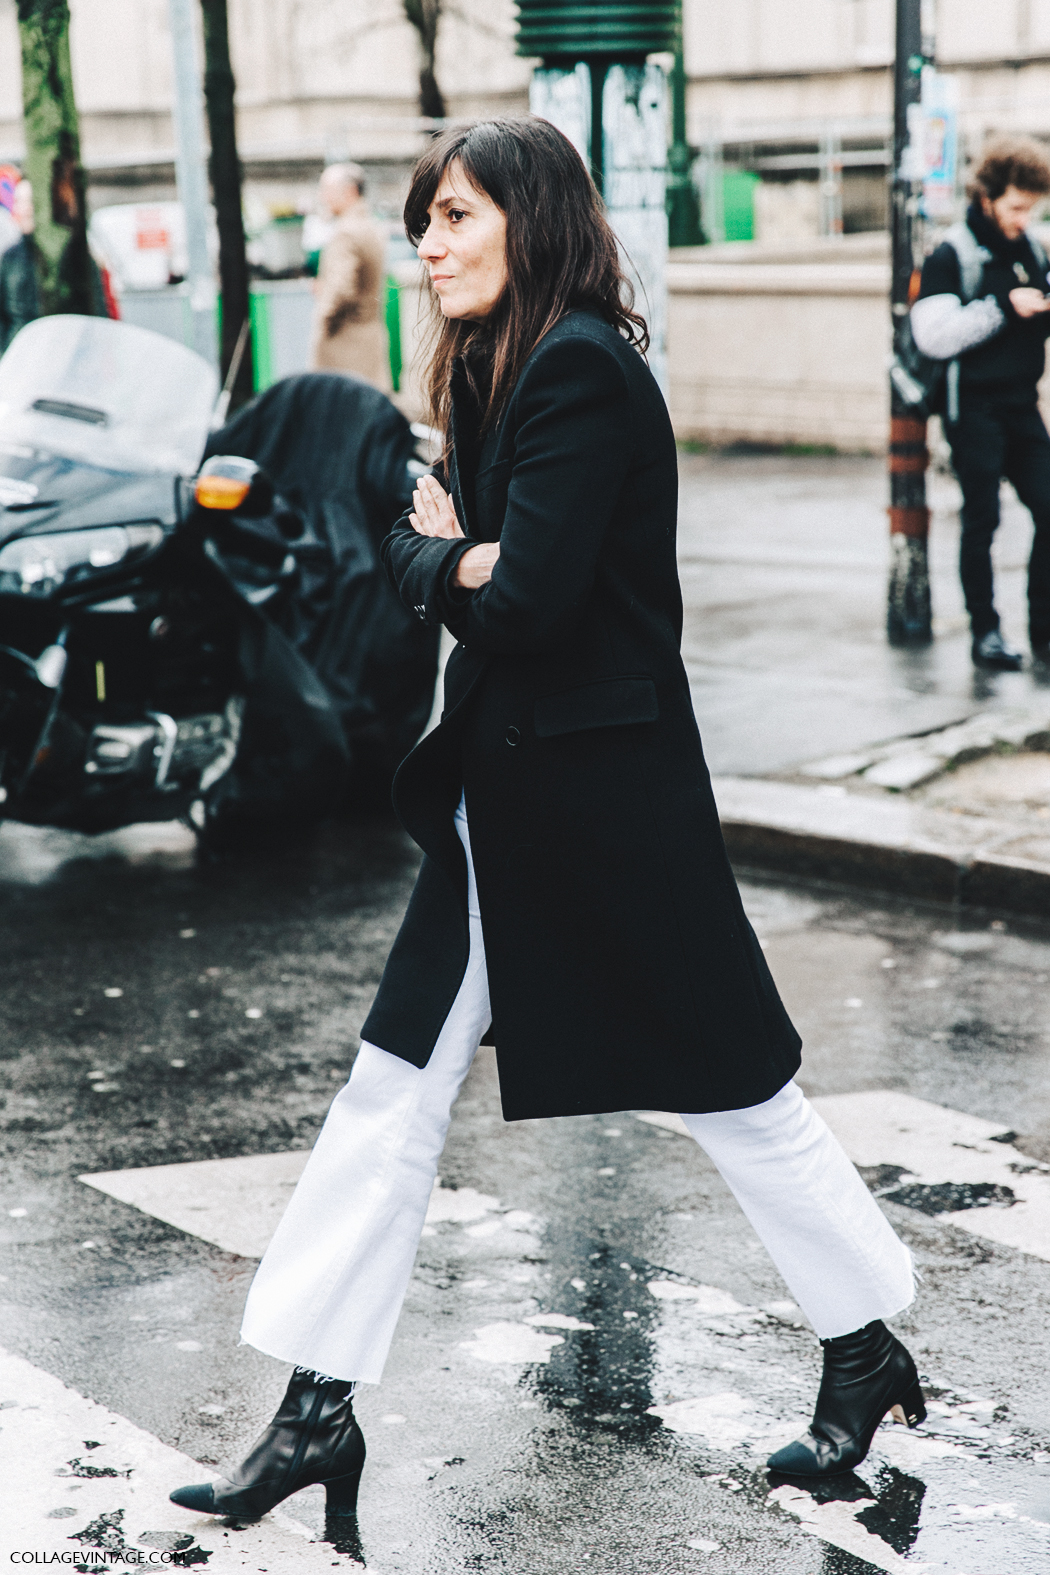 PFW-Paris_Fashion_Week_Fall_2016-Street_Style-Collage_Vintage-Emmanuel_Alt-Black_And_White-Chanel_Boots-